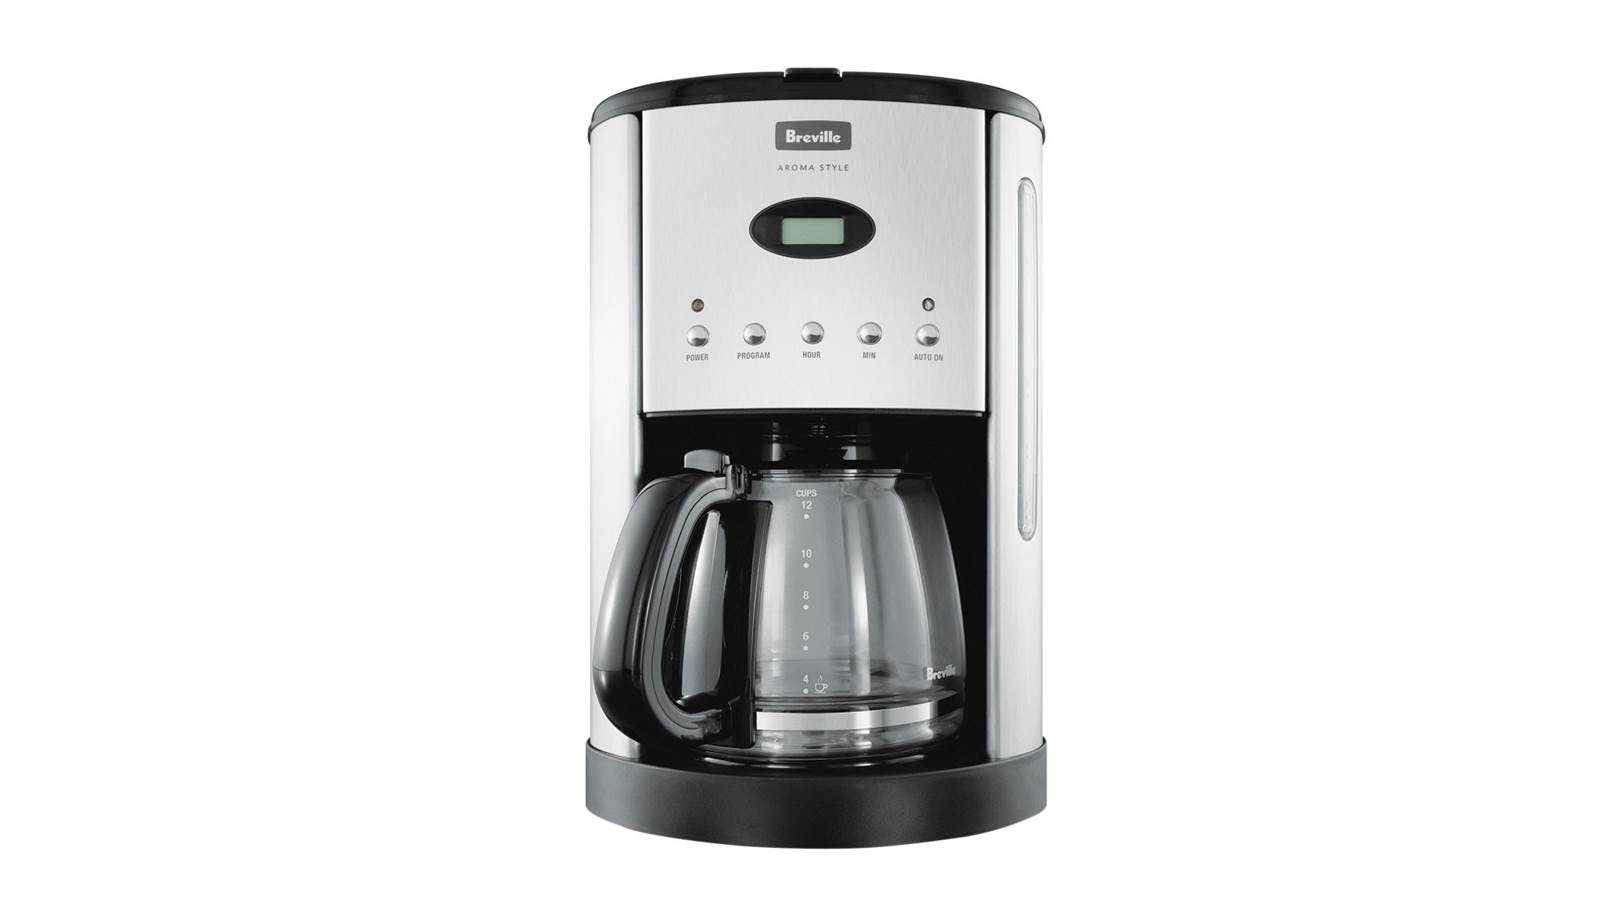 Breville 12 Cup Drip Filter Coffee Machine Harvey Norman Malaysia